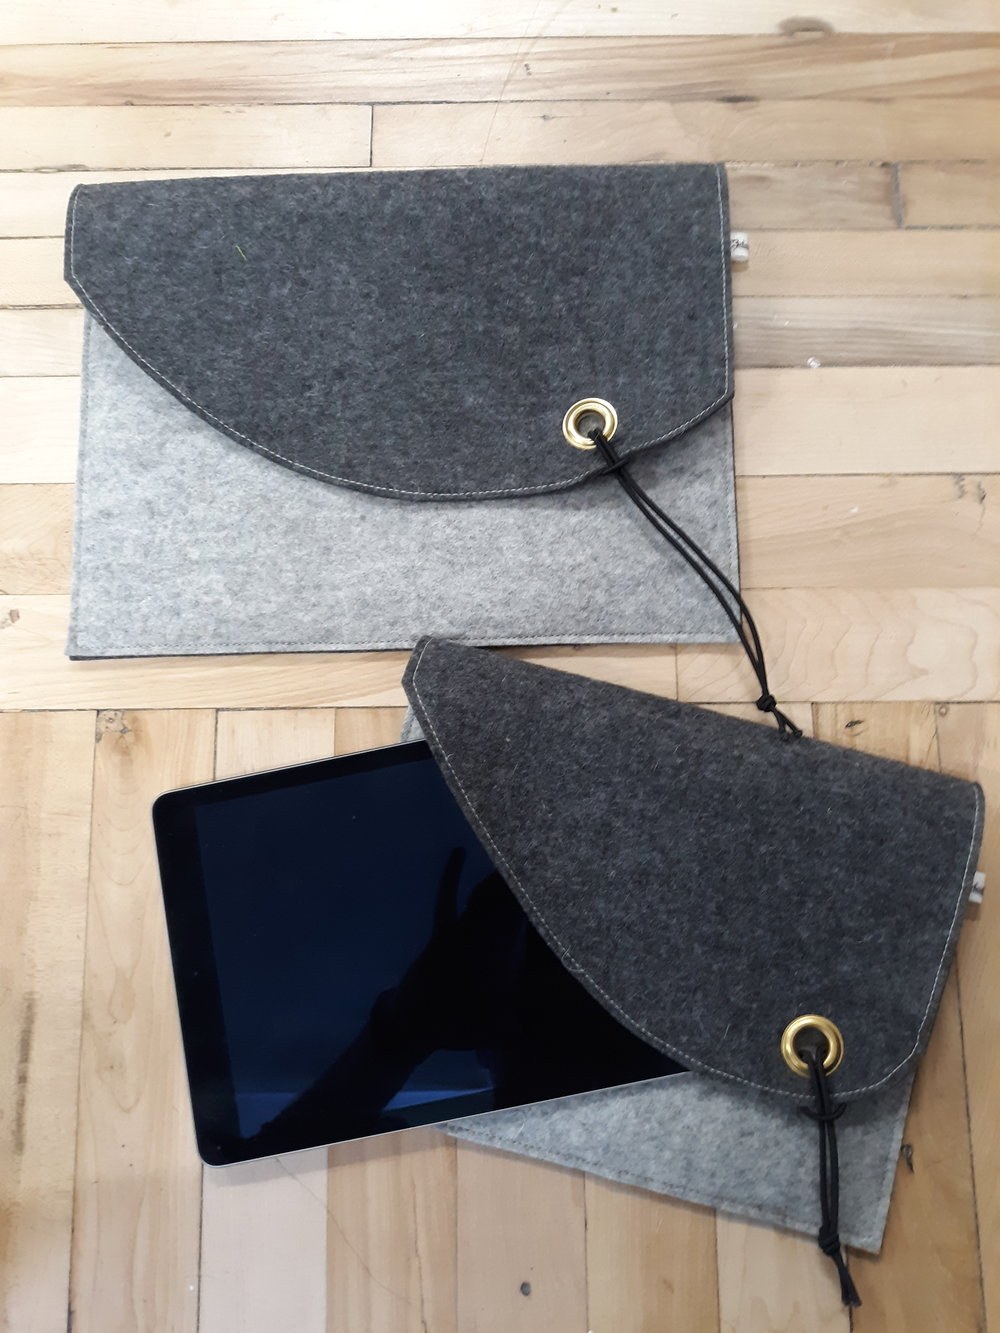 iPad or Surface Sleeve - Made to order: $25.00